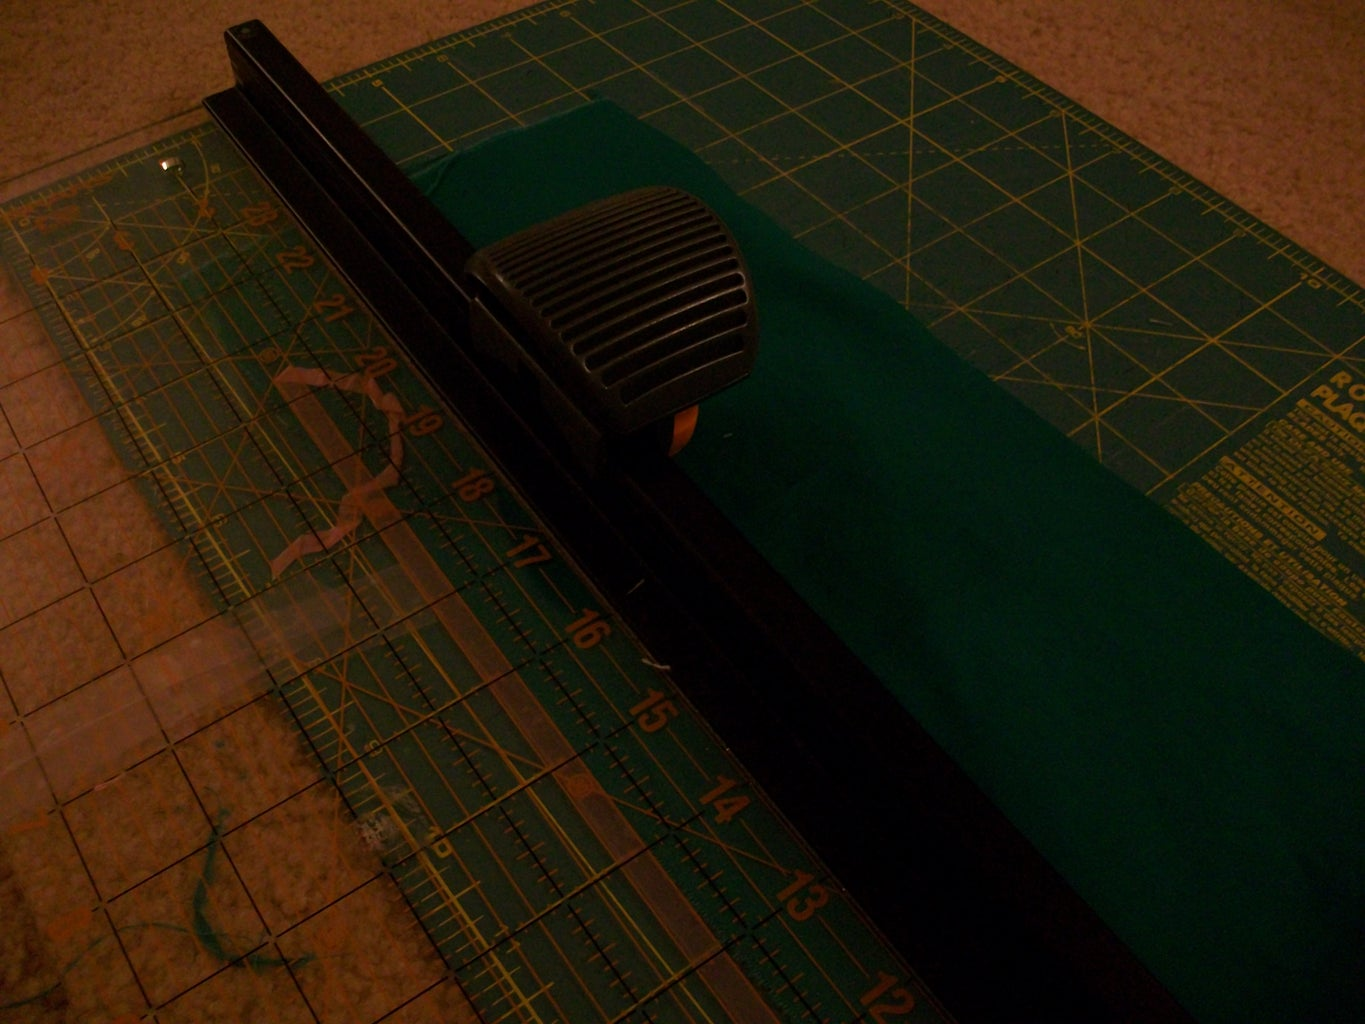 Step 10 - Cutting and Sewing the Borders